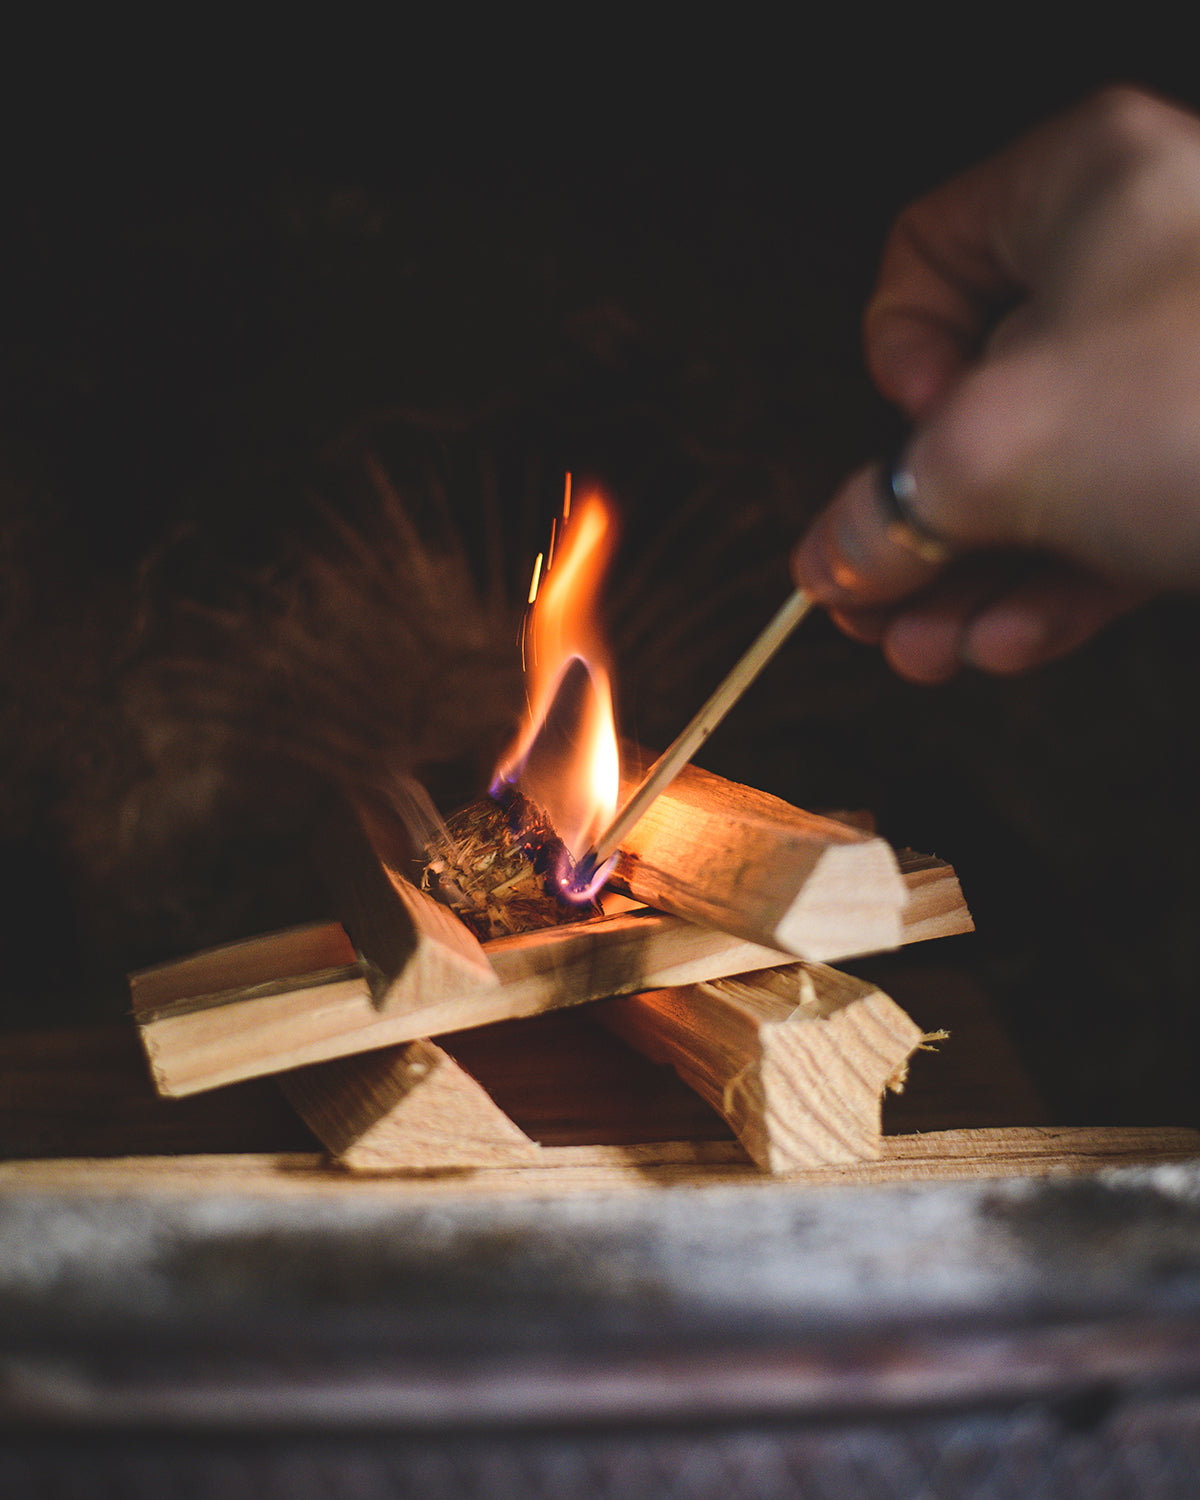 Single match to light the Kindwood Natural Firelighter